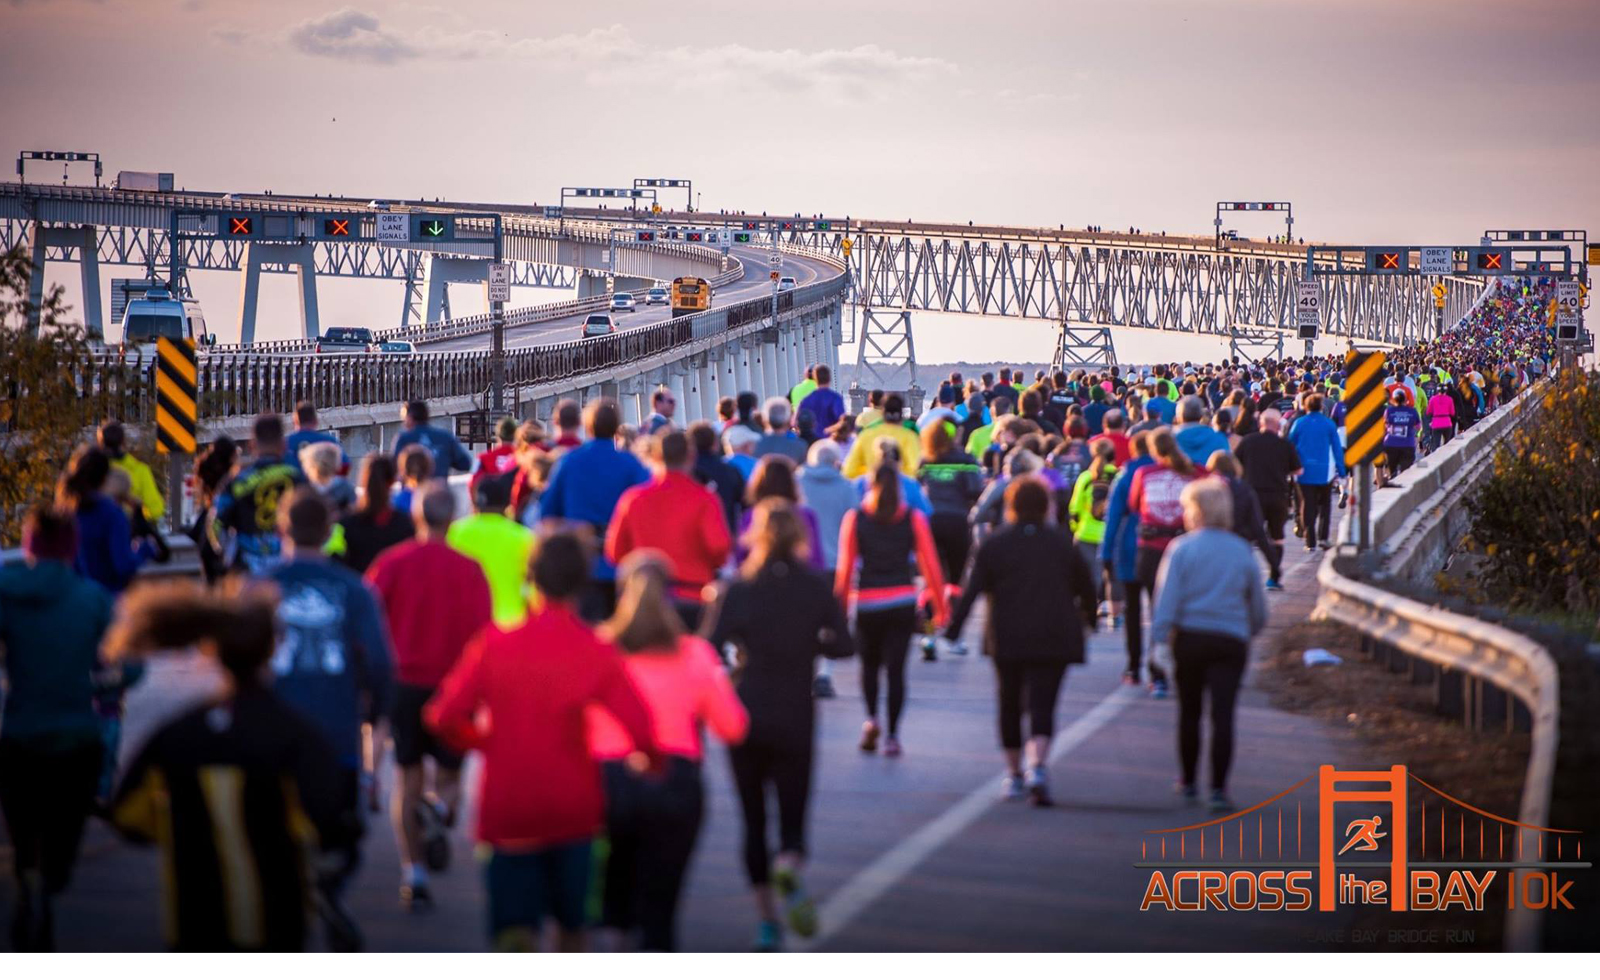 Across the Bay 10K - cover image